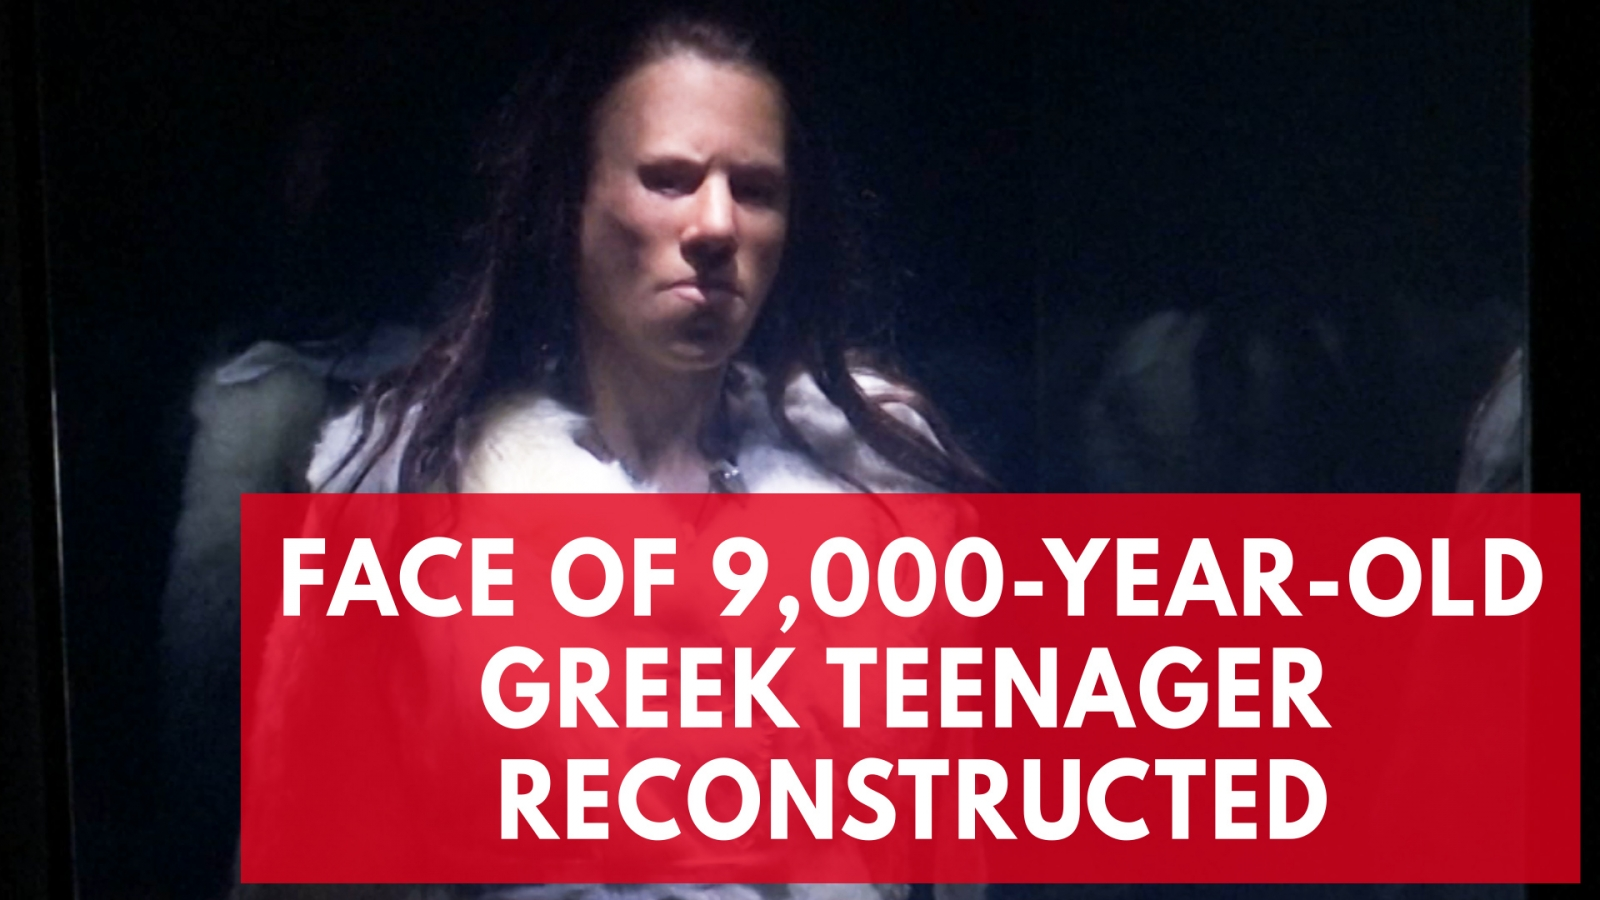 scientists-reconstruct-the-face-of-a-9000-year-old-greek-teenager